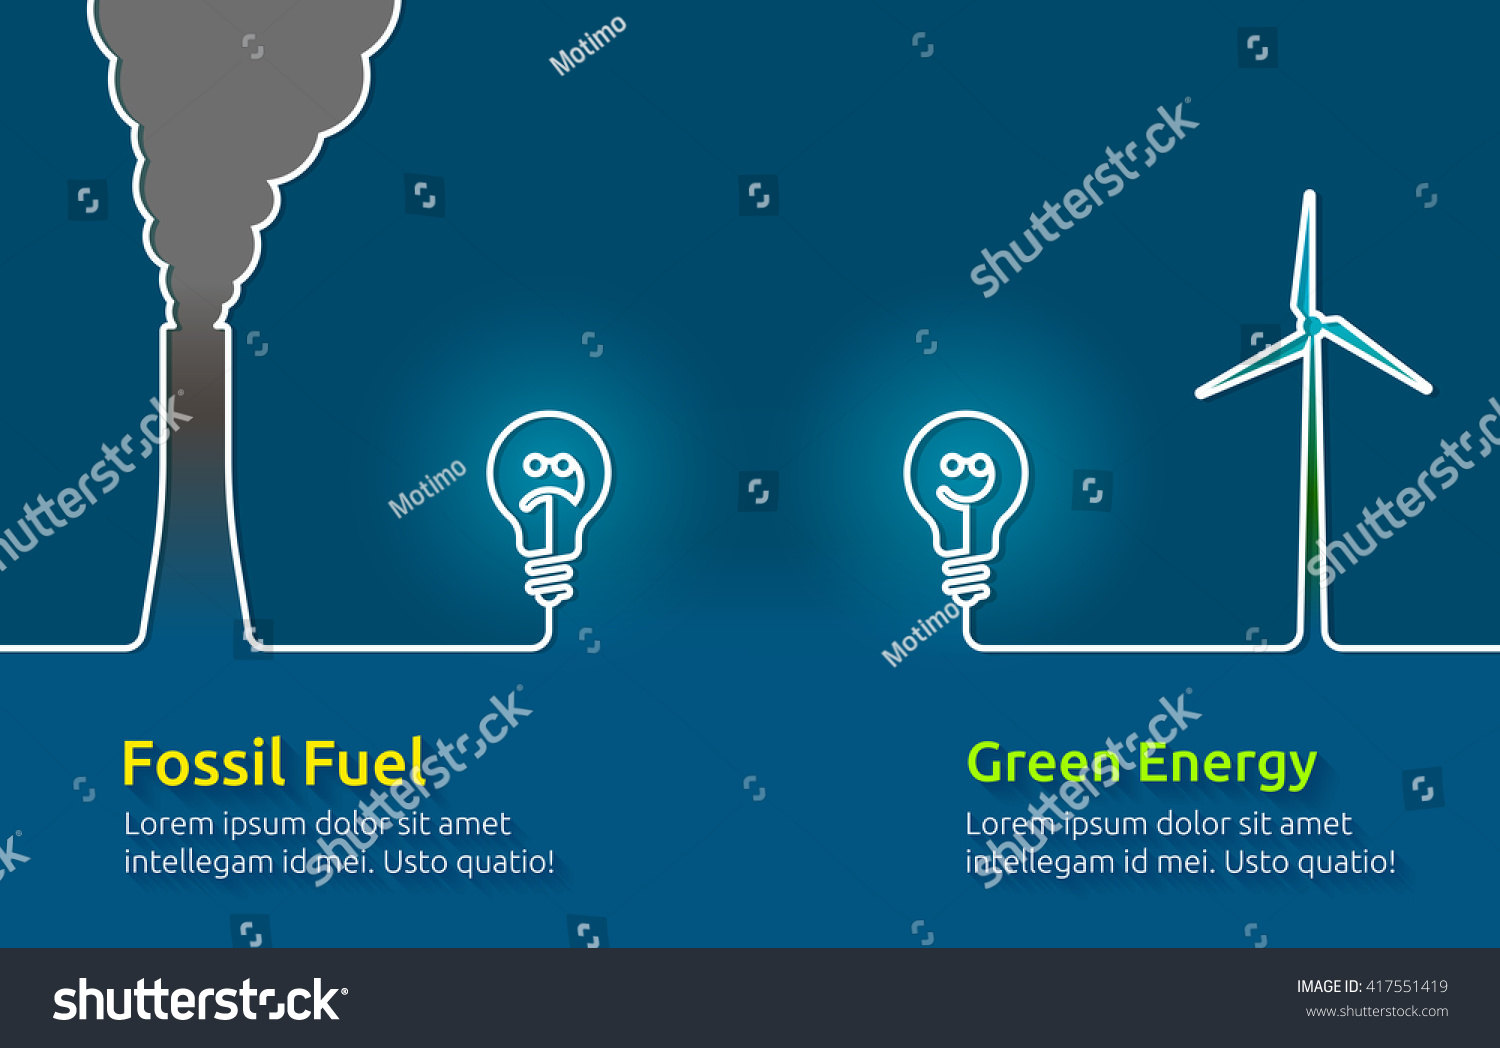 Green Energy Vs Polluting Fossil Fuels Stock Vector